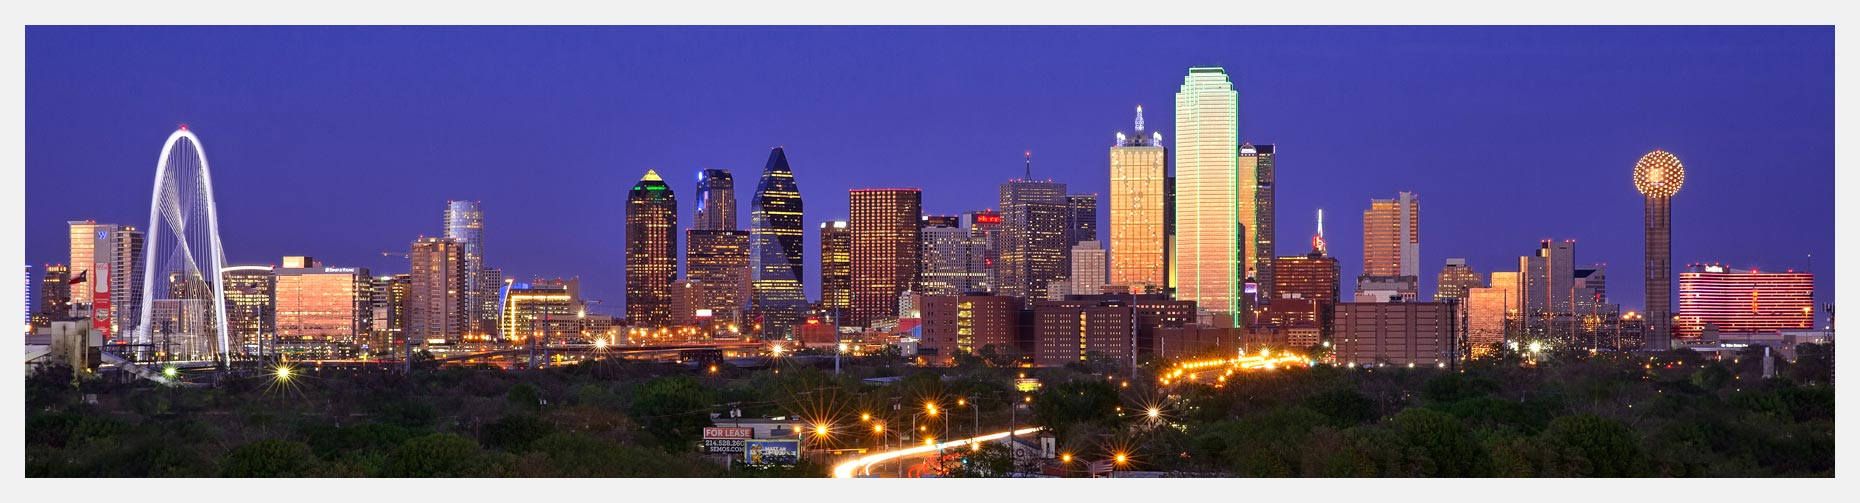 Dallas-Skyline-Panoramic-at-Dusk